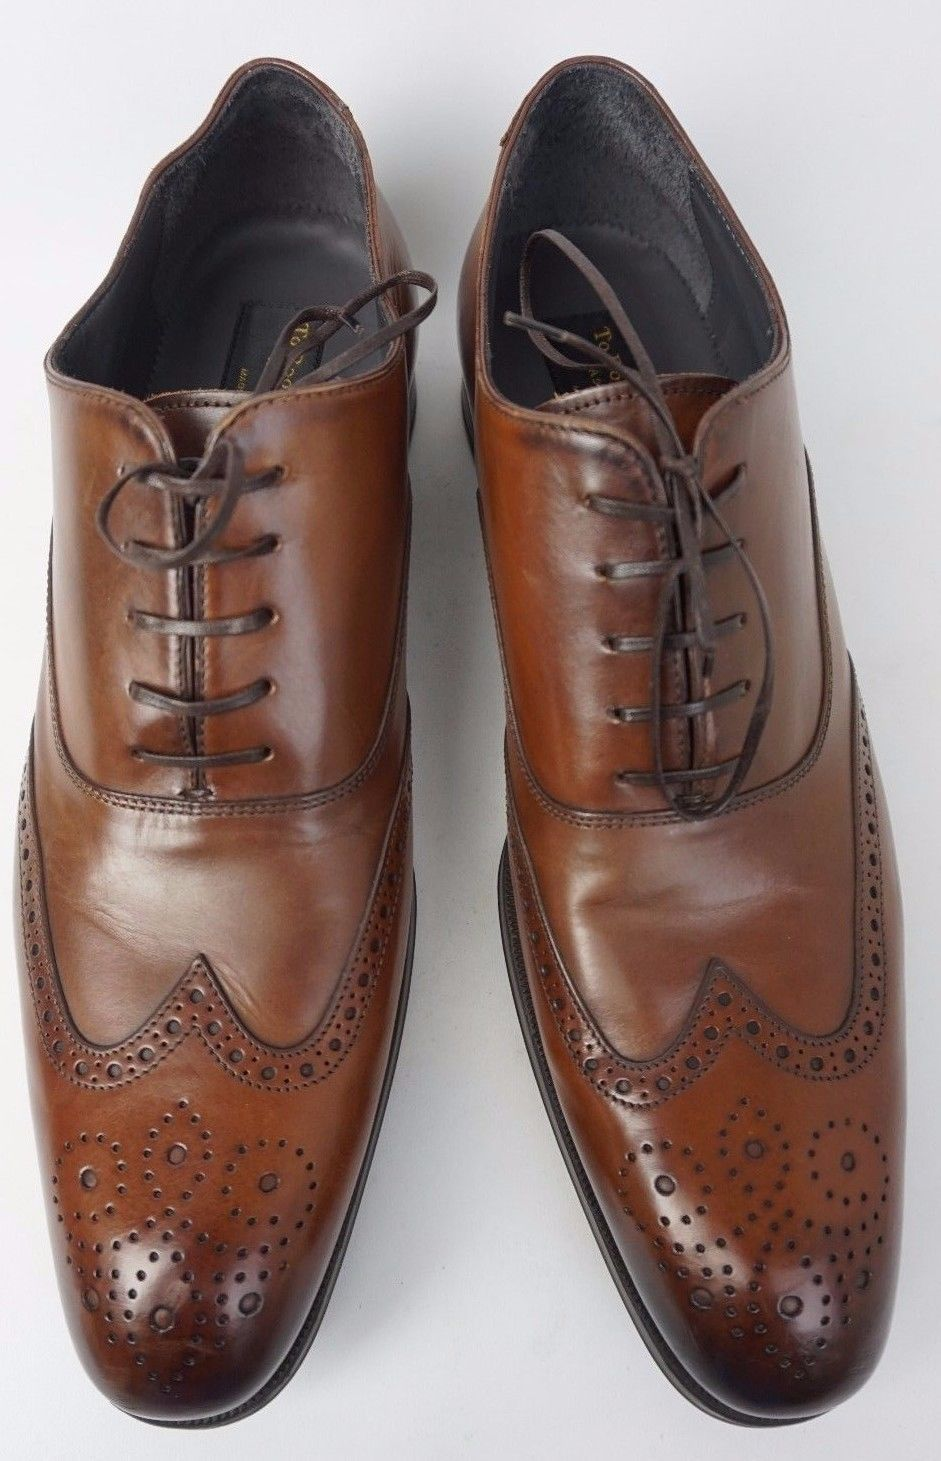 c6f952f065984 These are brown To Boot New York Dodd Wingtip shoes in size 12. The ...